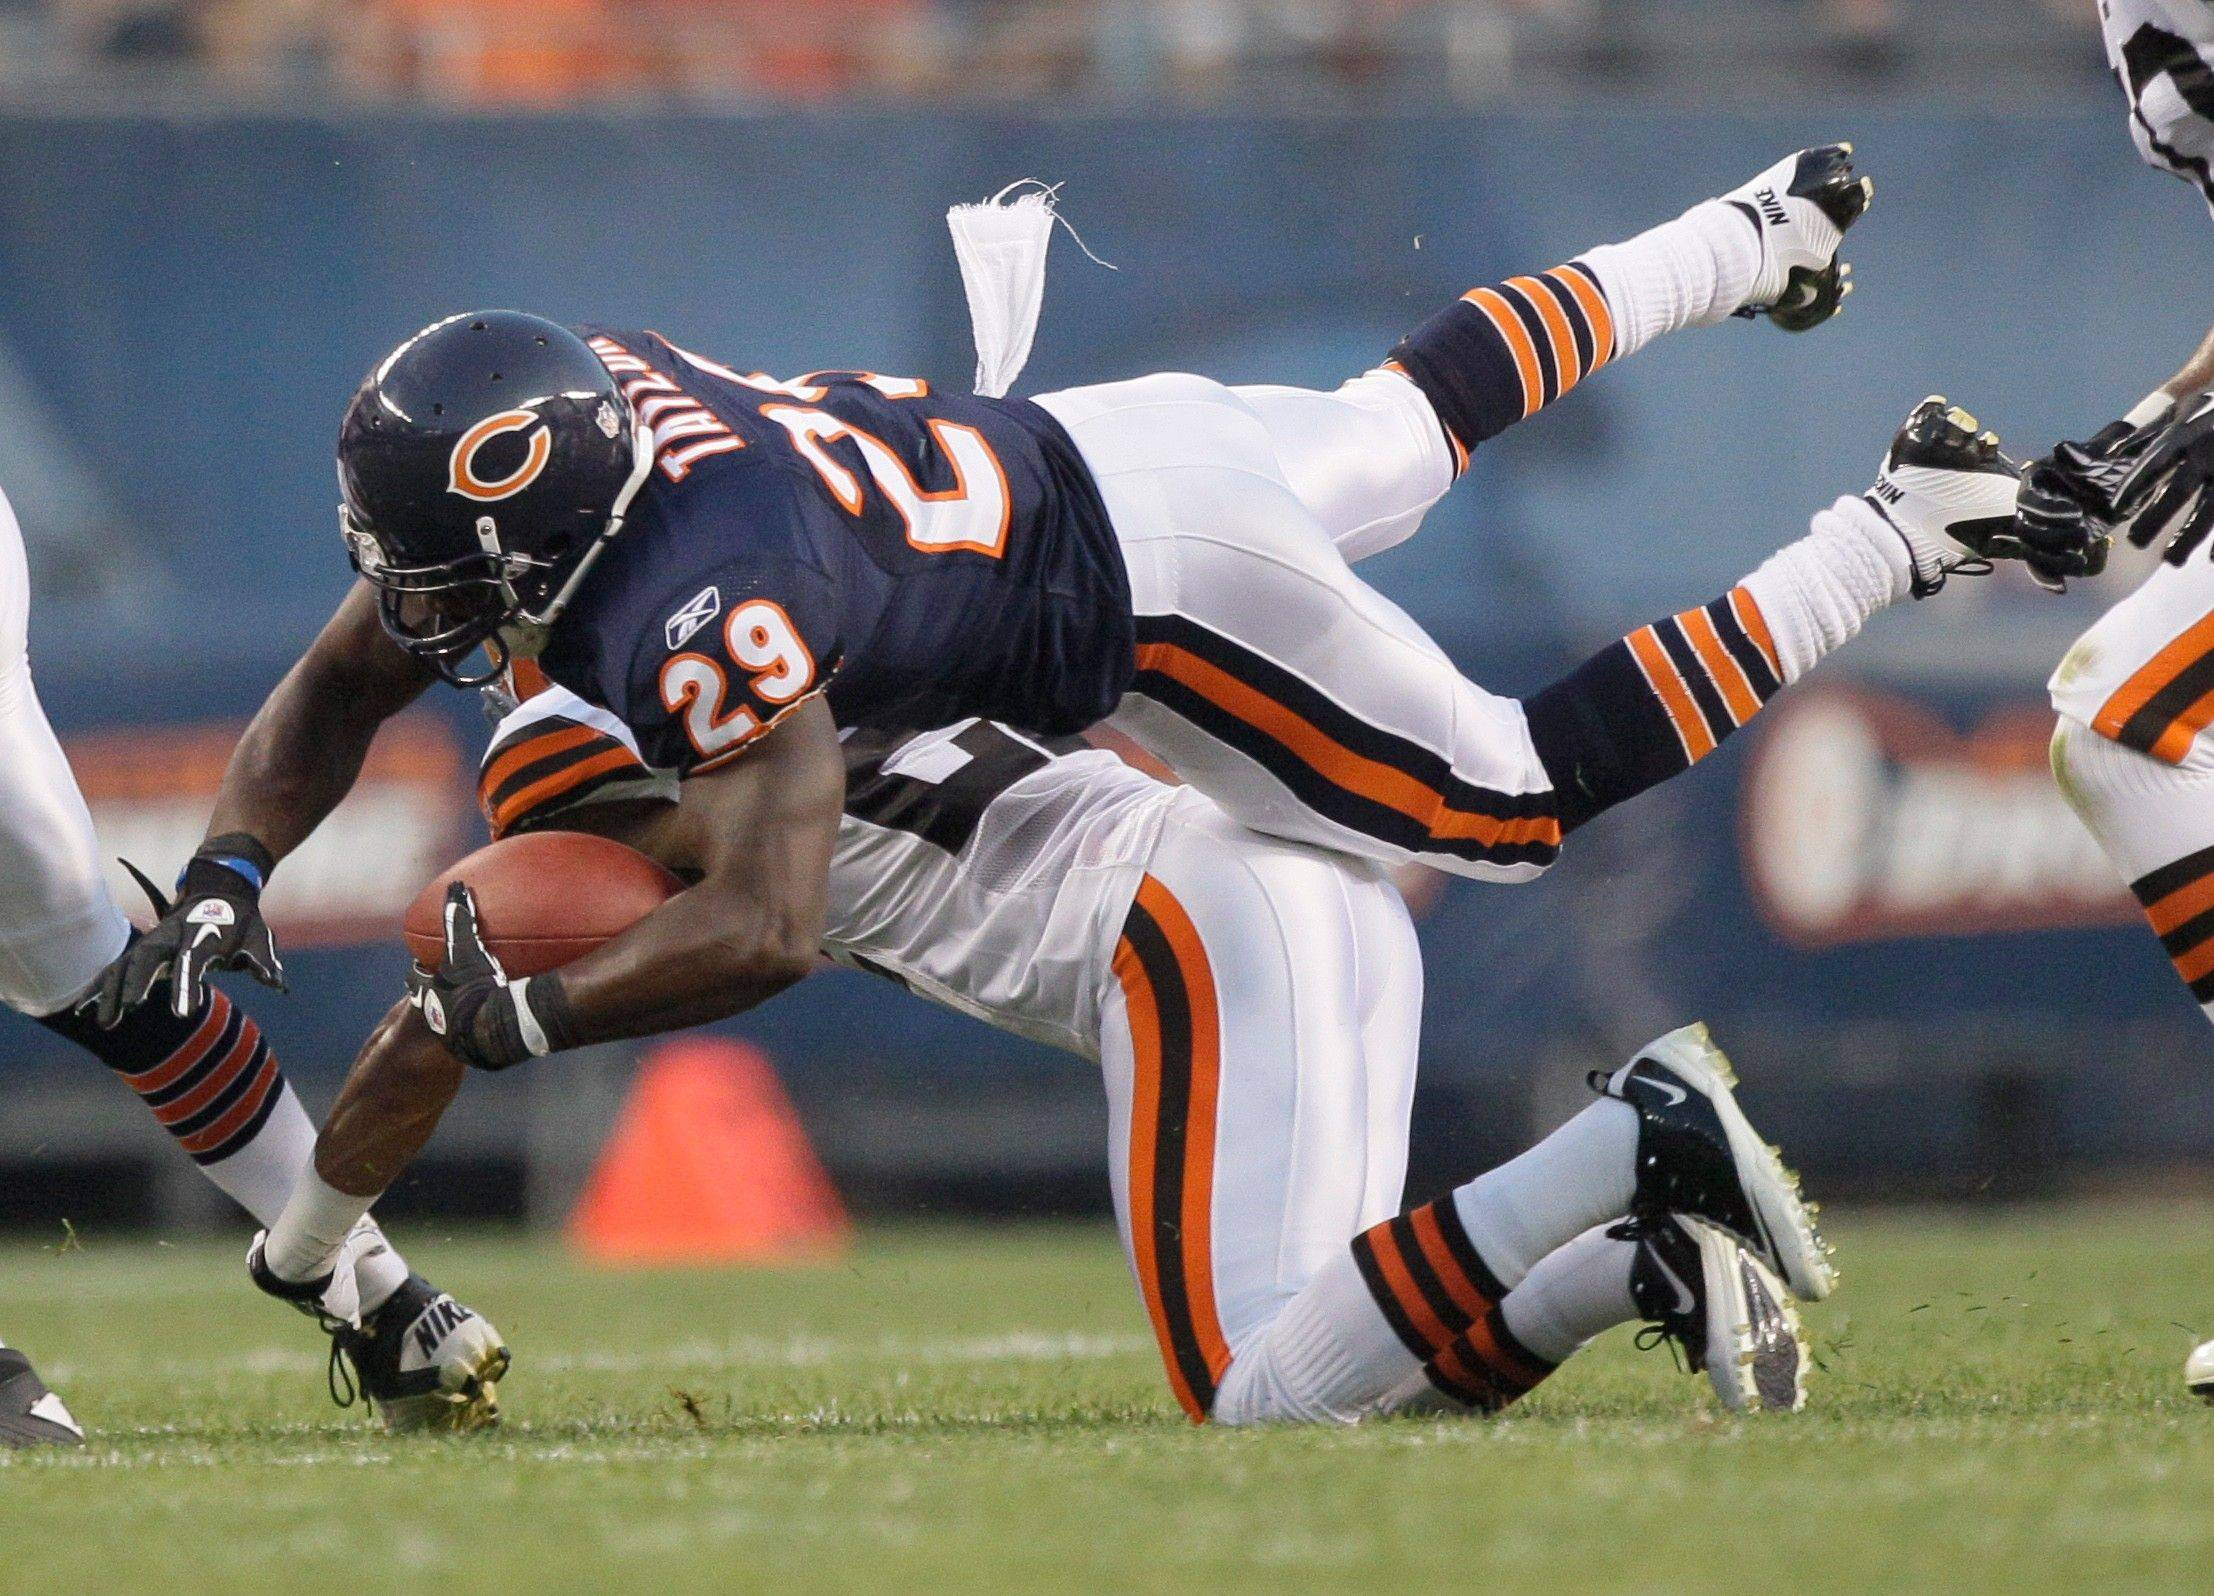 Chicago Bears running back Chester Taylor is tackled by Cleveland Browns defensive back Buster Skrine in the first half.